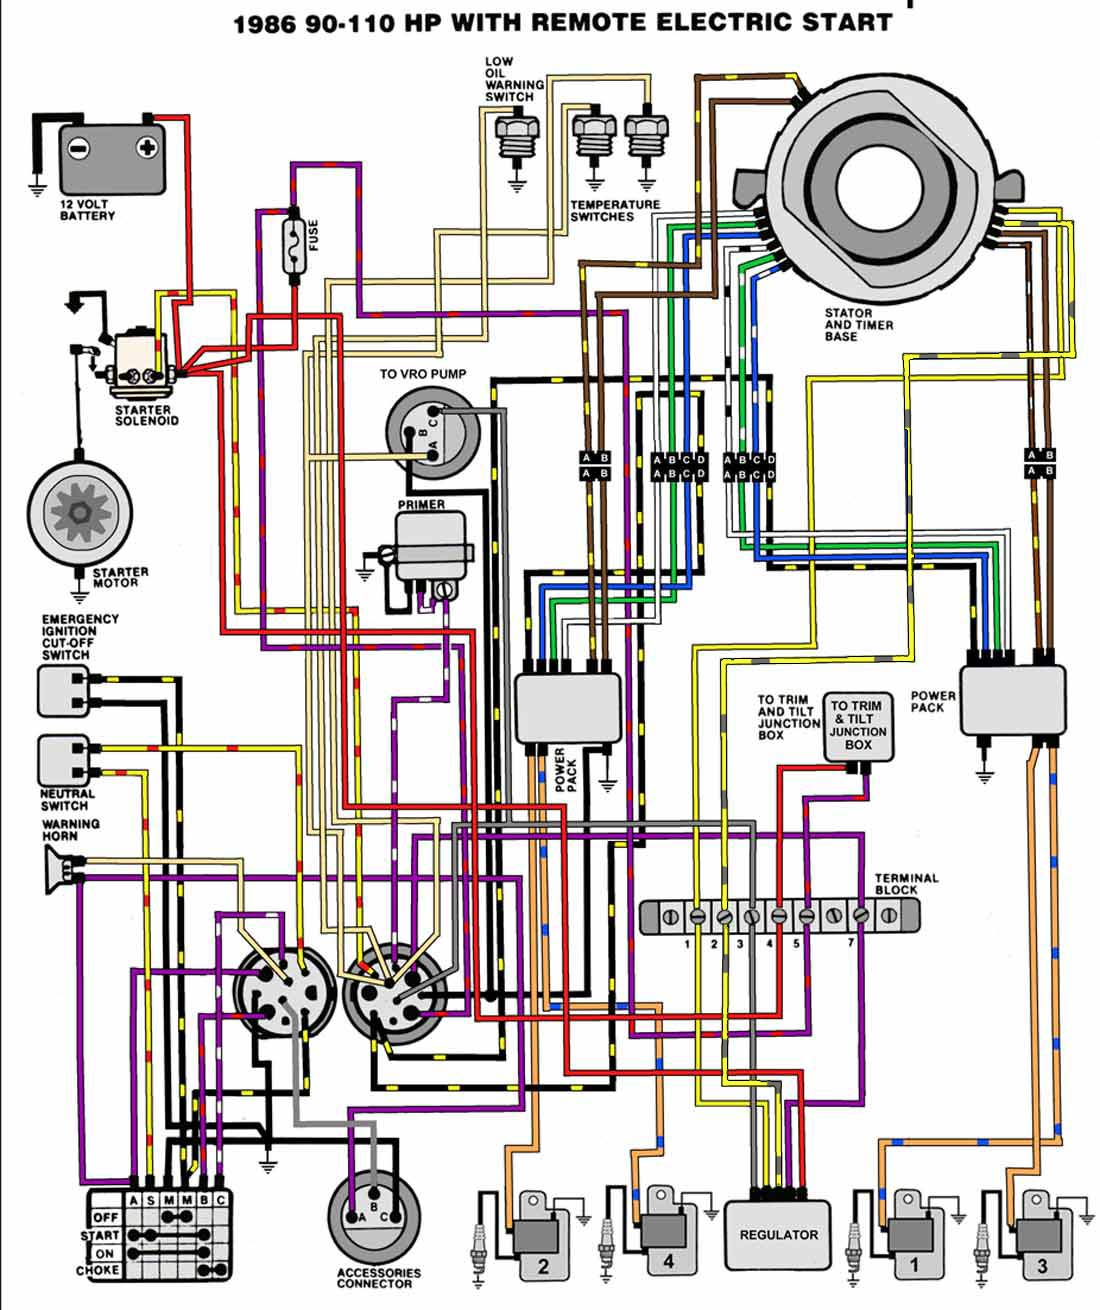 Yamaha Outboard Electrical Wiring Diagram on chris craft wiring diagram, yamaha golf cart wiring diagram, yamaha road star wiring-diagram, yamaha wiring harness diagram, yamaha outboard diagnostic connector, smoker craft wiring diagram, yamaha outboard exhaust system, johnson outboard wiring diagram, sea hunt wiring diagram, tohatsu outboard wiring diagram, bennington wiring diagram, snowmobile wiring diagram, yamaha 703 remote control wiring diagram, yamaha gas wiring diagram, outboard starter wiring diagram, yamaha outboard relay, 1996 f150 fuel diagram, yamaha generator wiring diagram, yamaha tachometer 6y5-8350t-83-00, dexter wiring diagram,